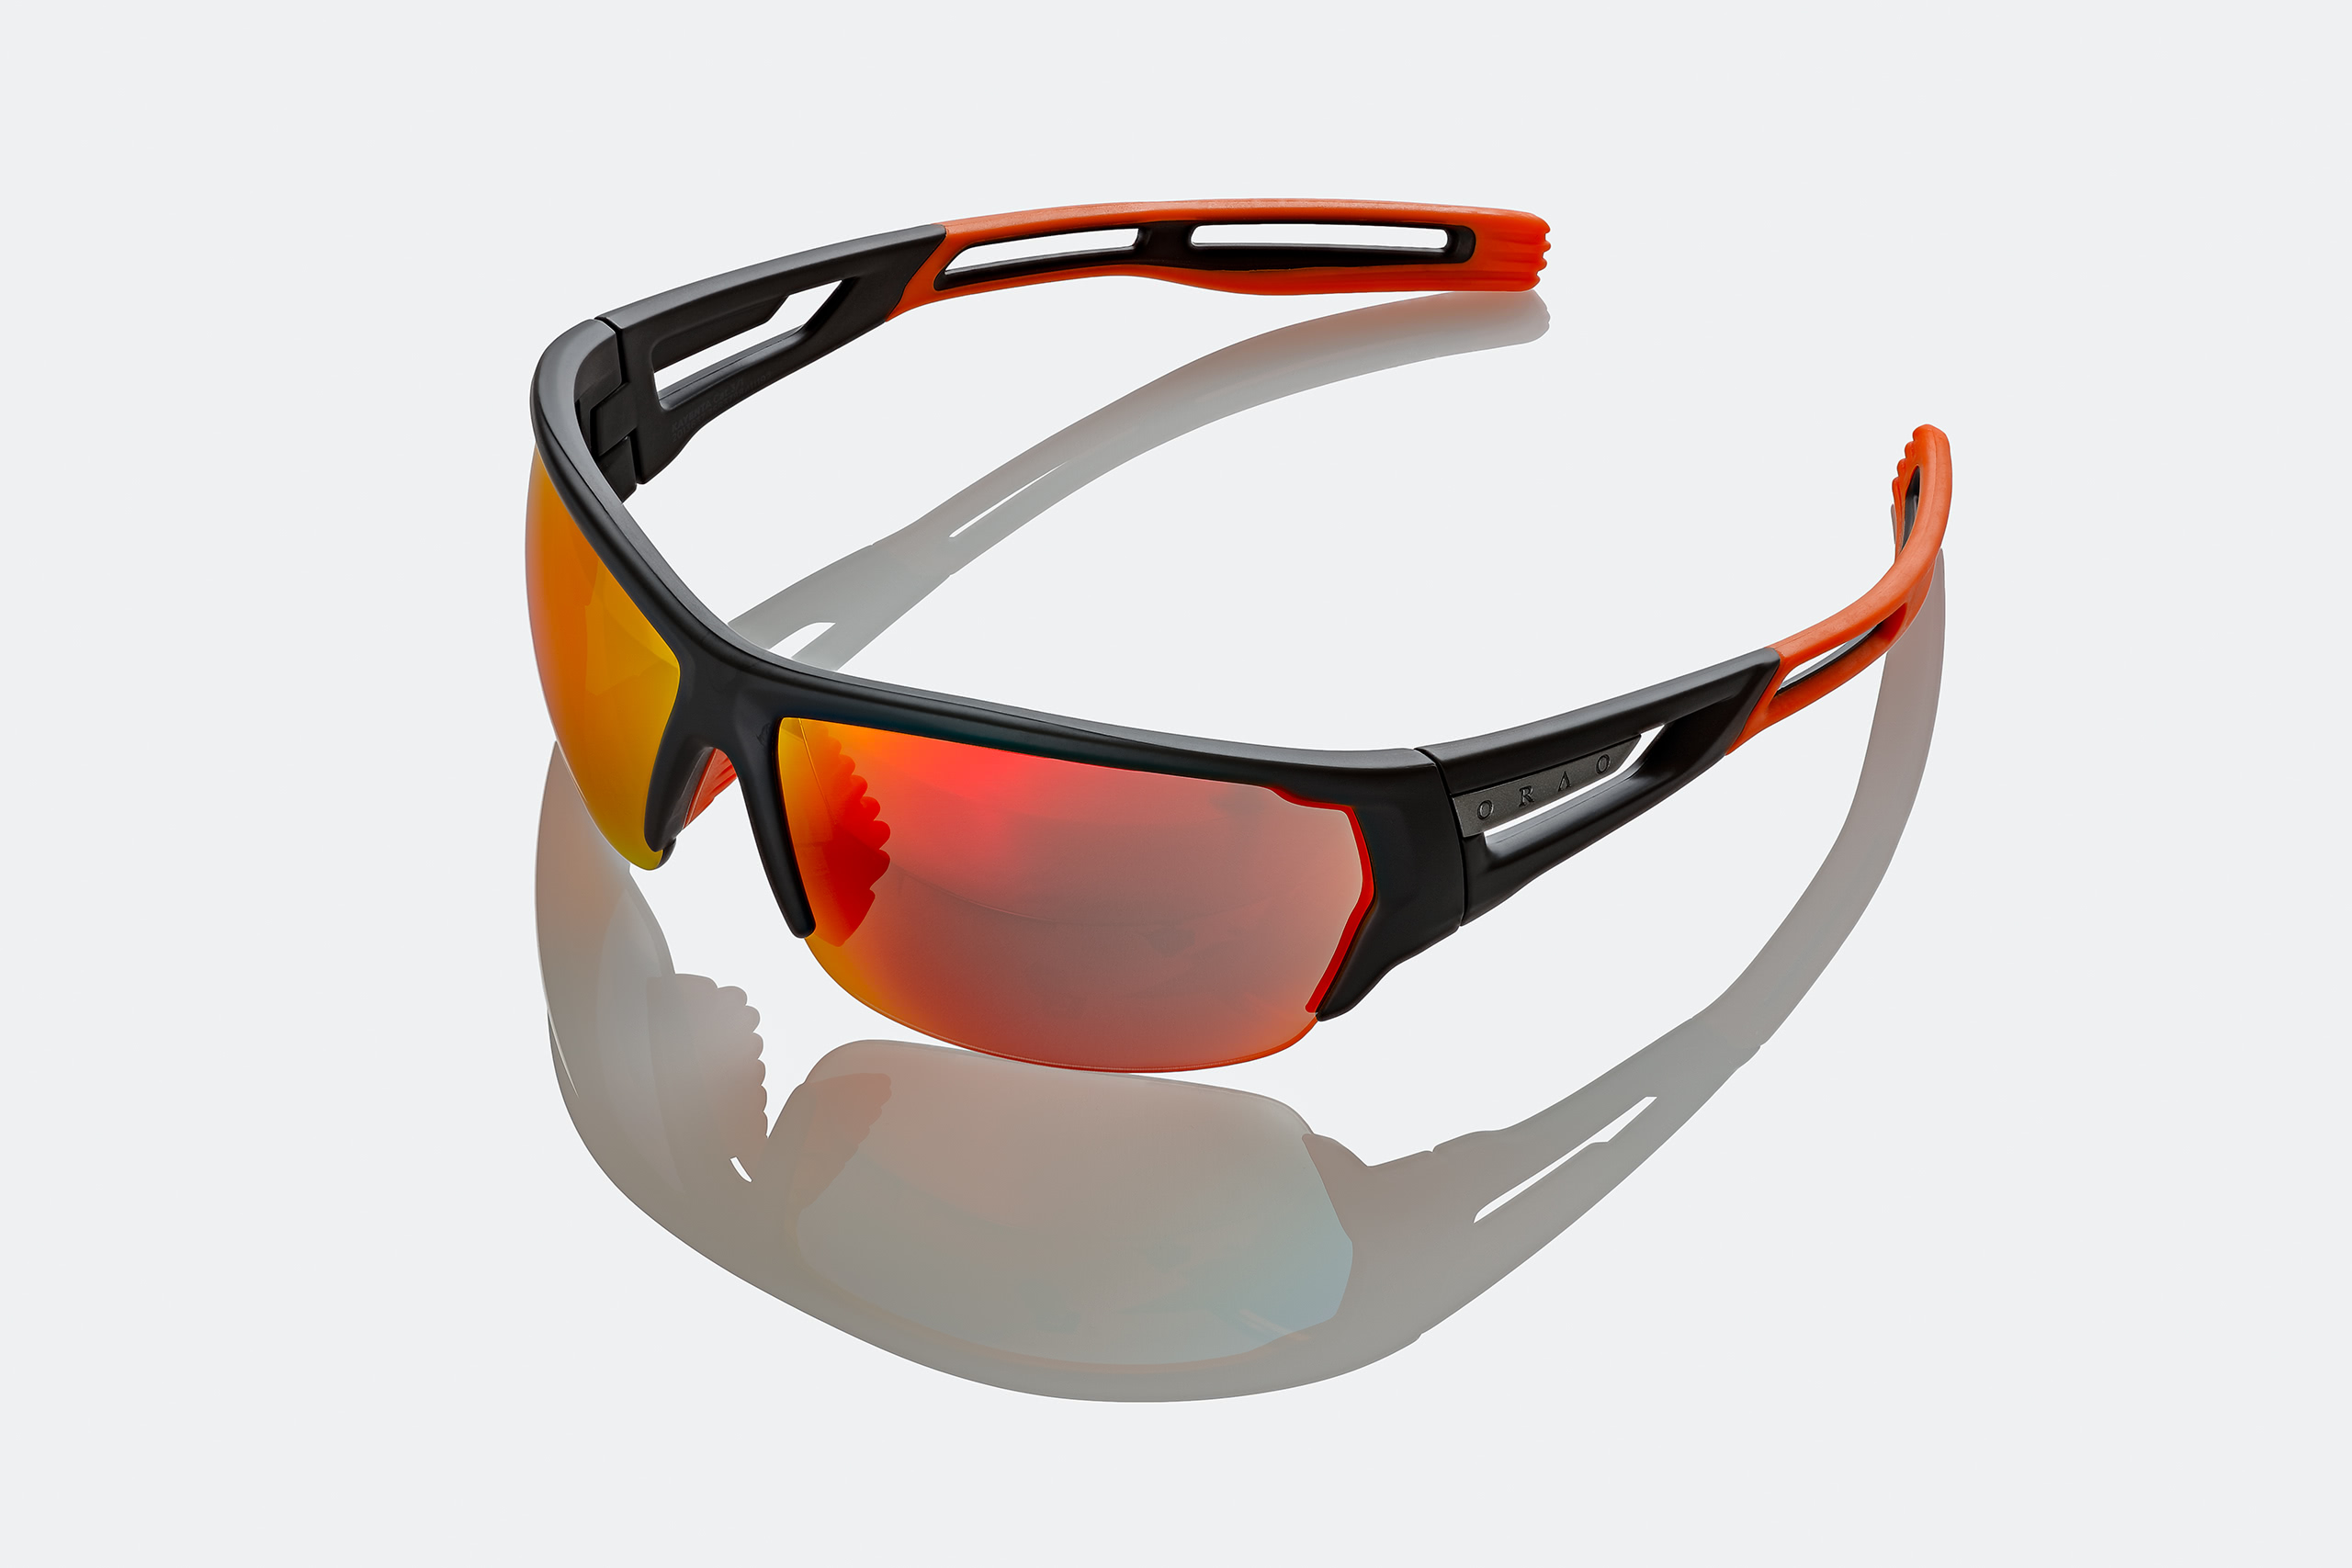 sunglasses commercial product photography on white